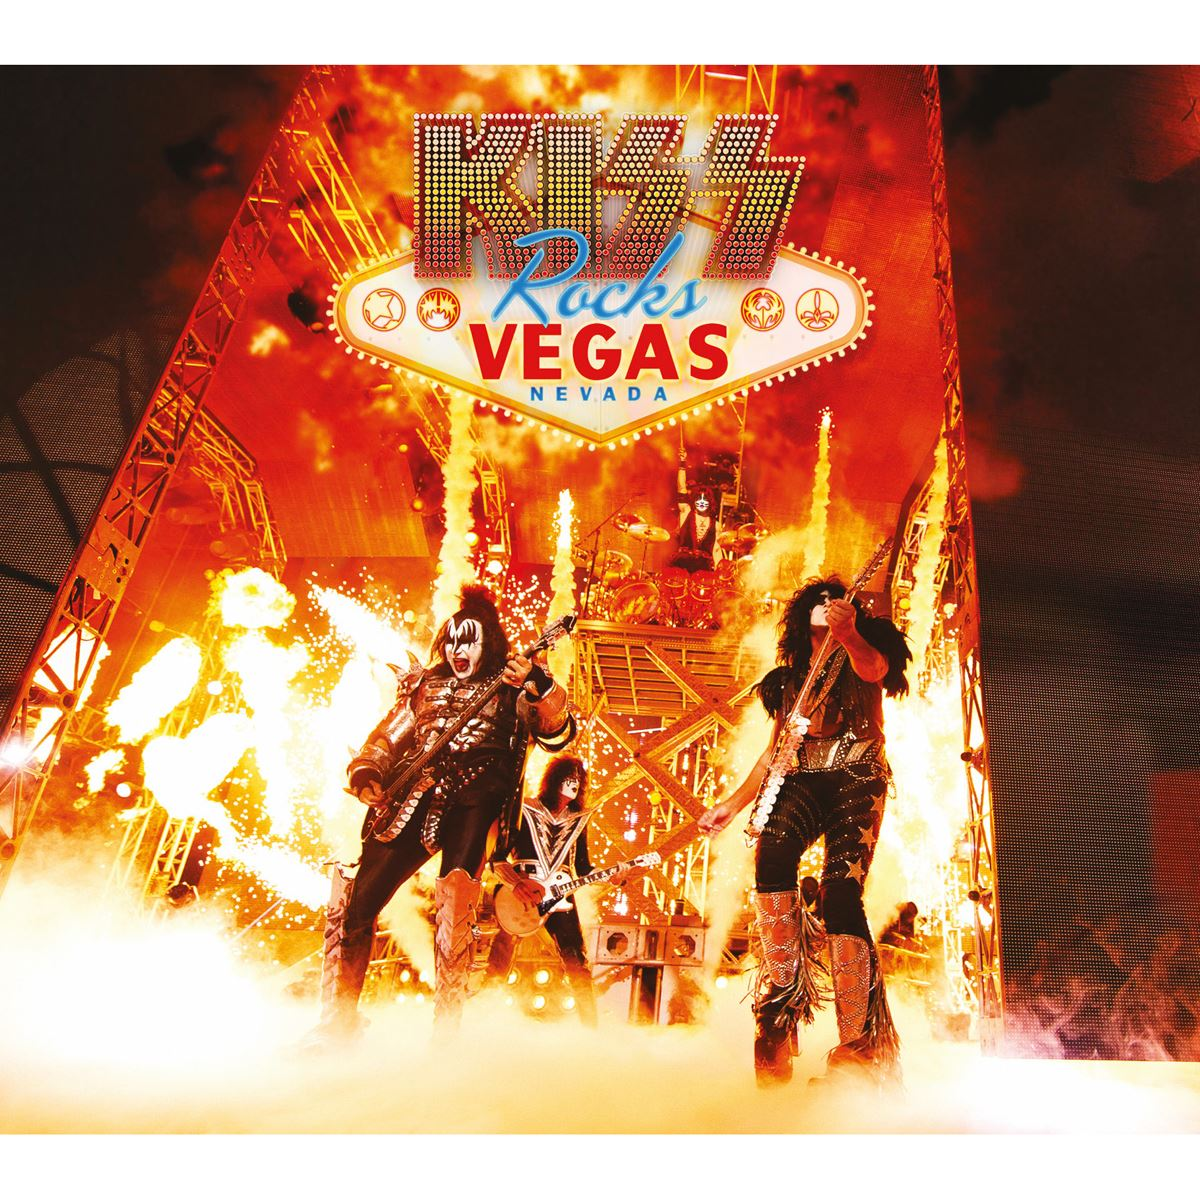 Cd kiss-  rocks vegas nevada  - Sanborns